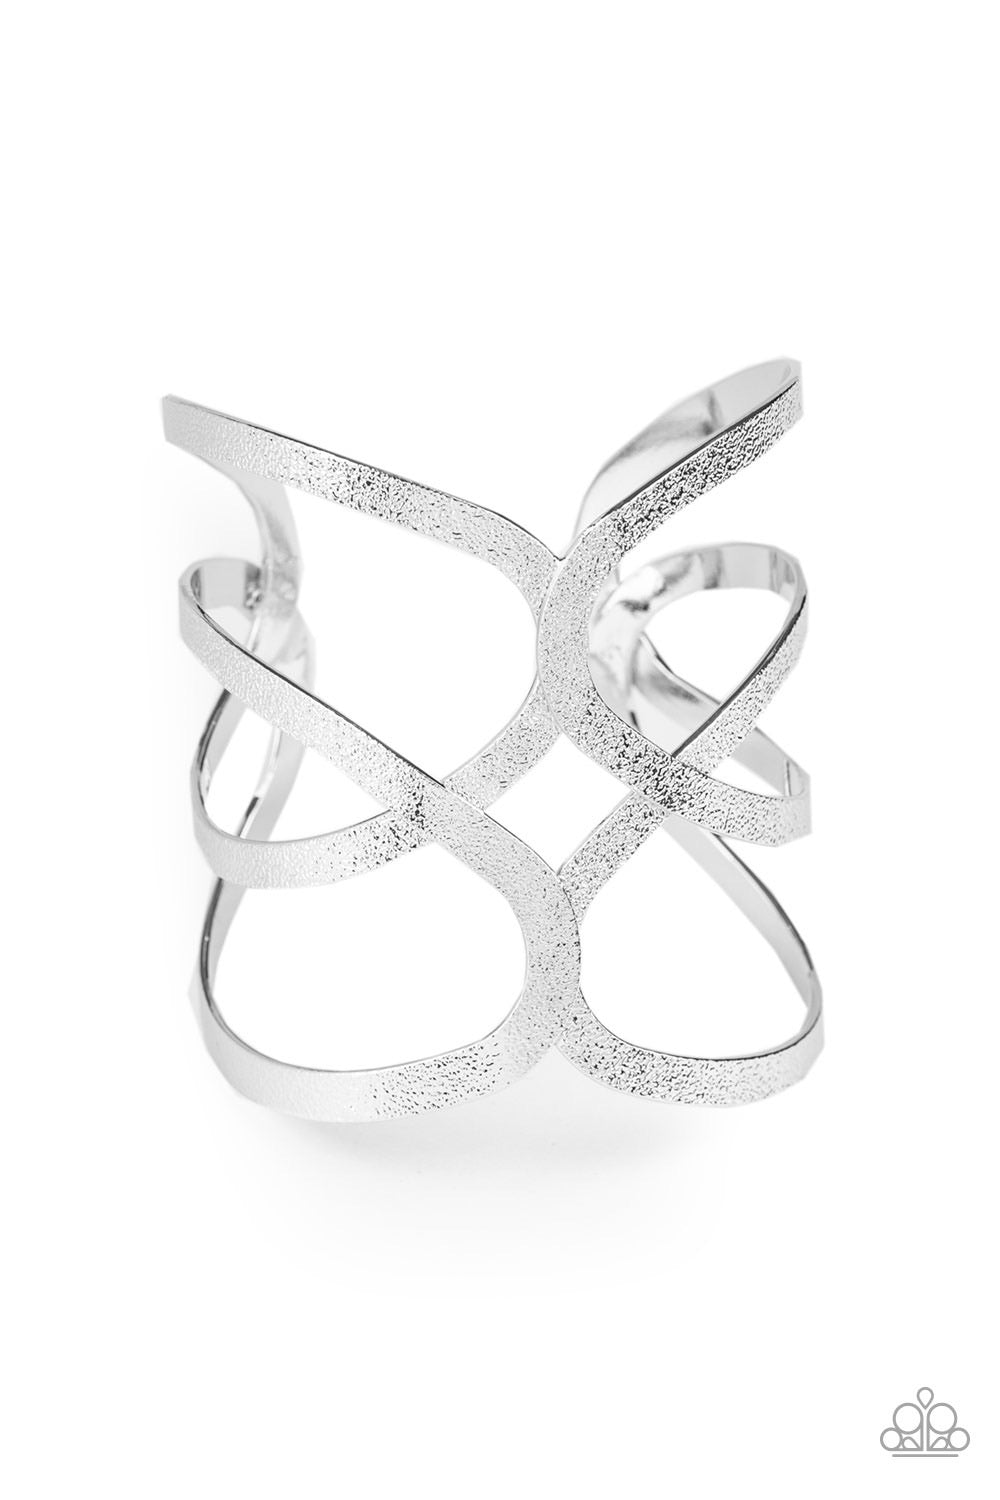 Crossing The Finish Line - Silver Cuff Bracelet - Paparazzi Accessories